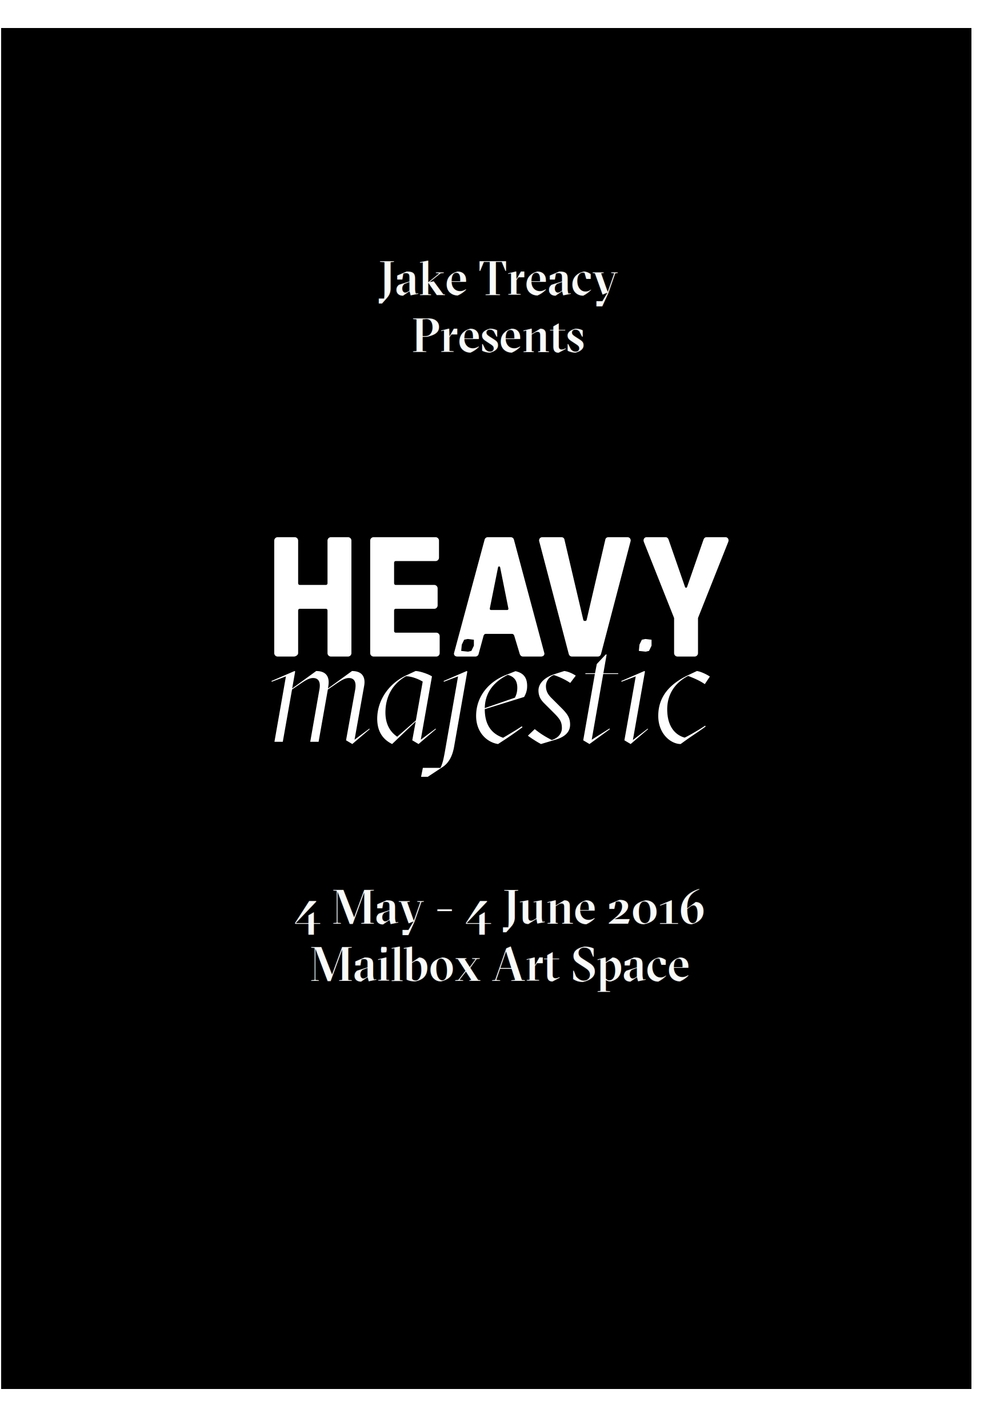 HeavyMajestic_Catalogue_digital_001.jpg